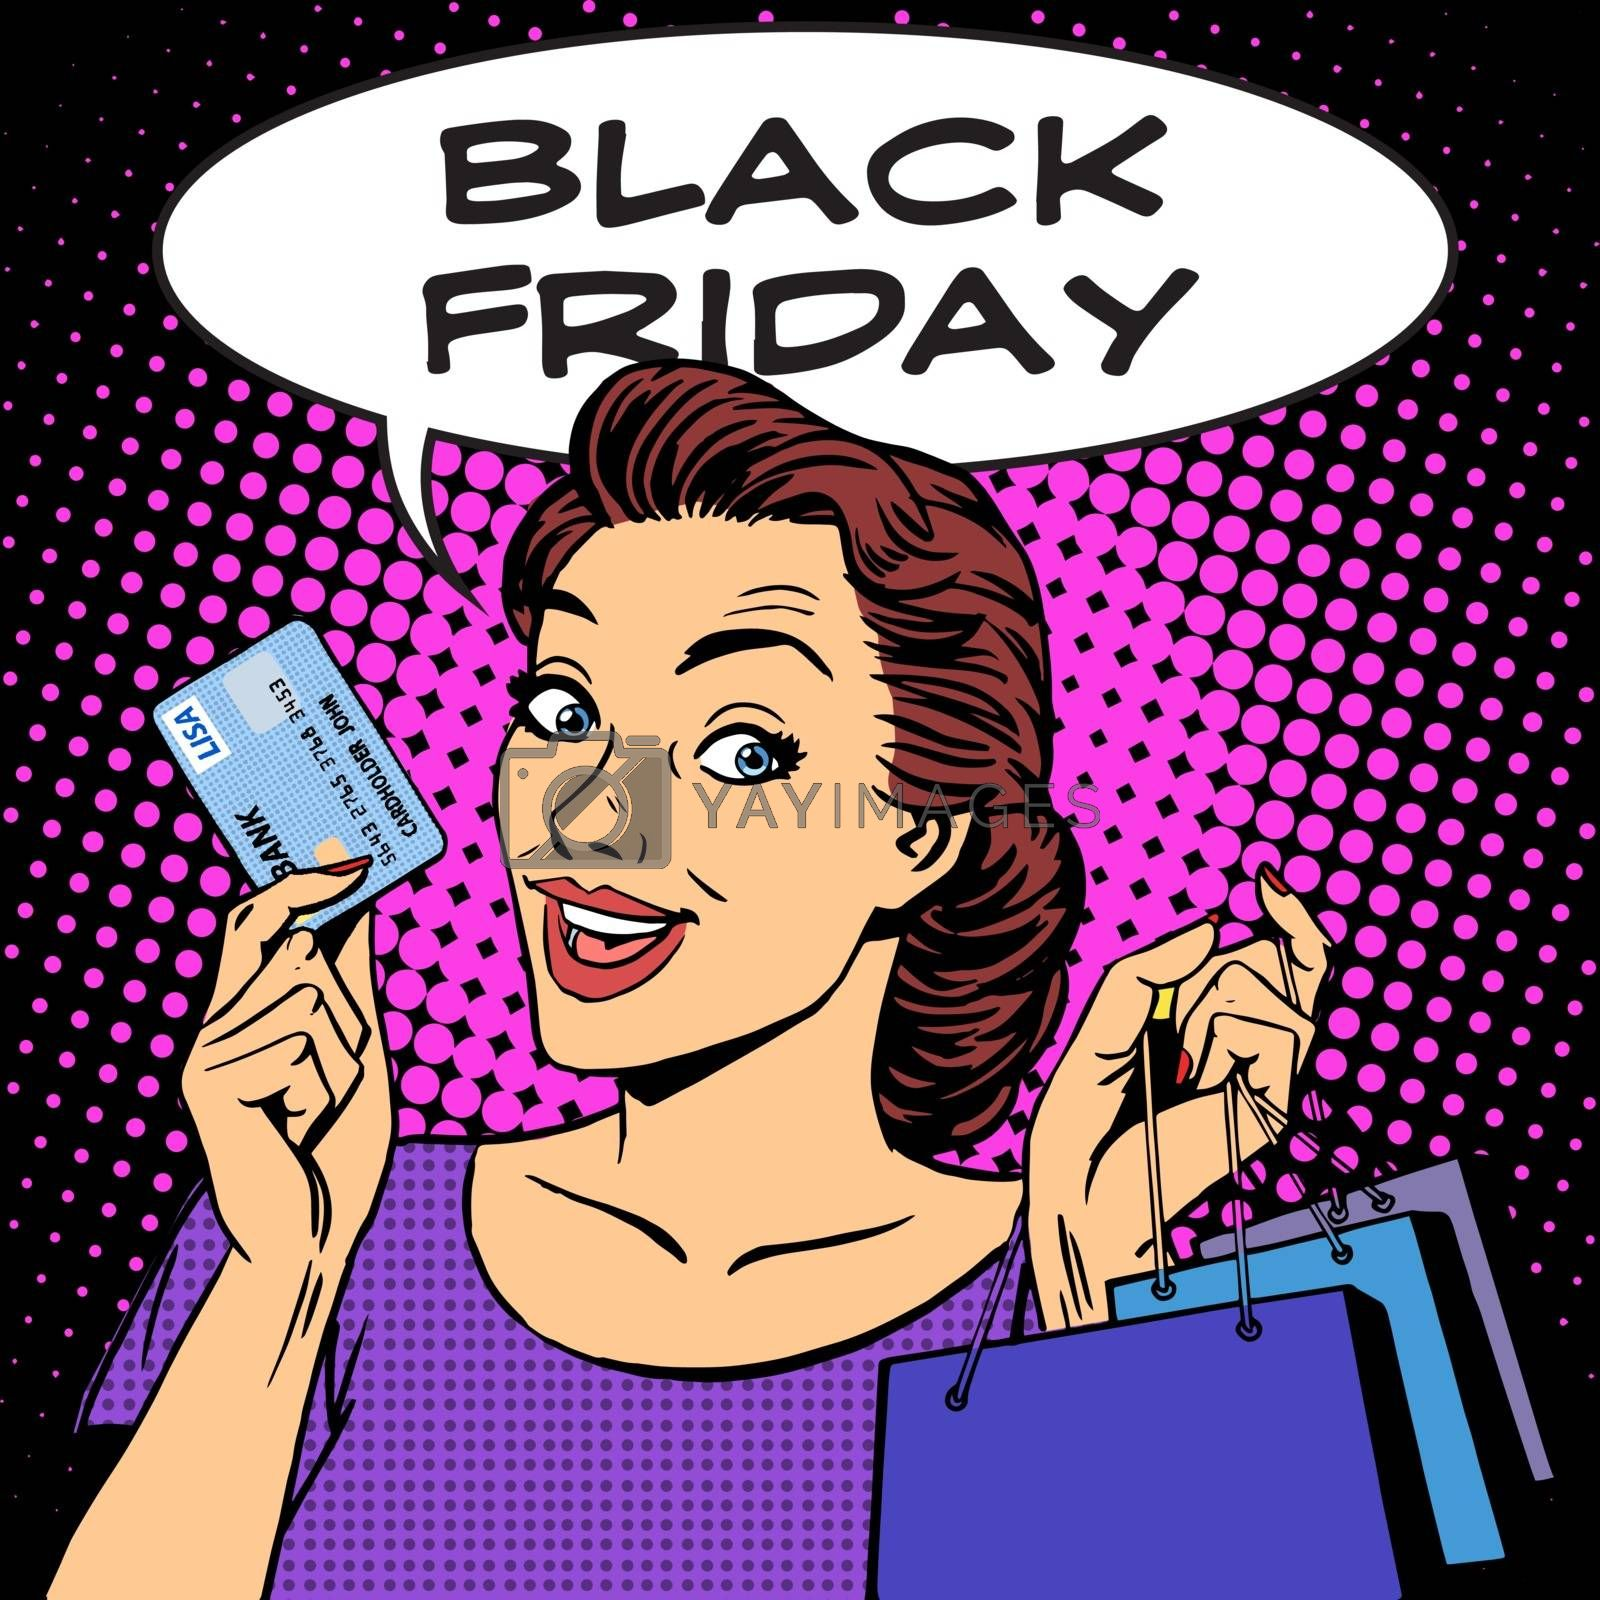 Black Friday woman with business card discounts pop art retro style. Sale buy shopping